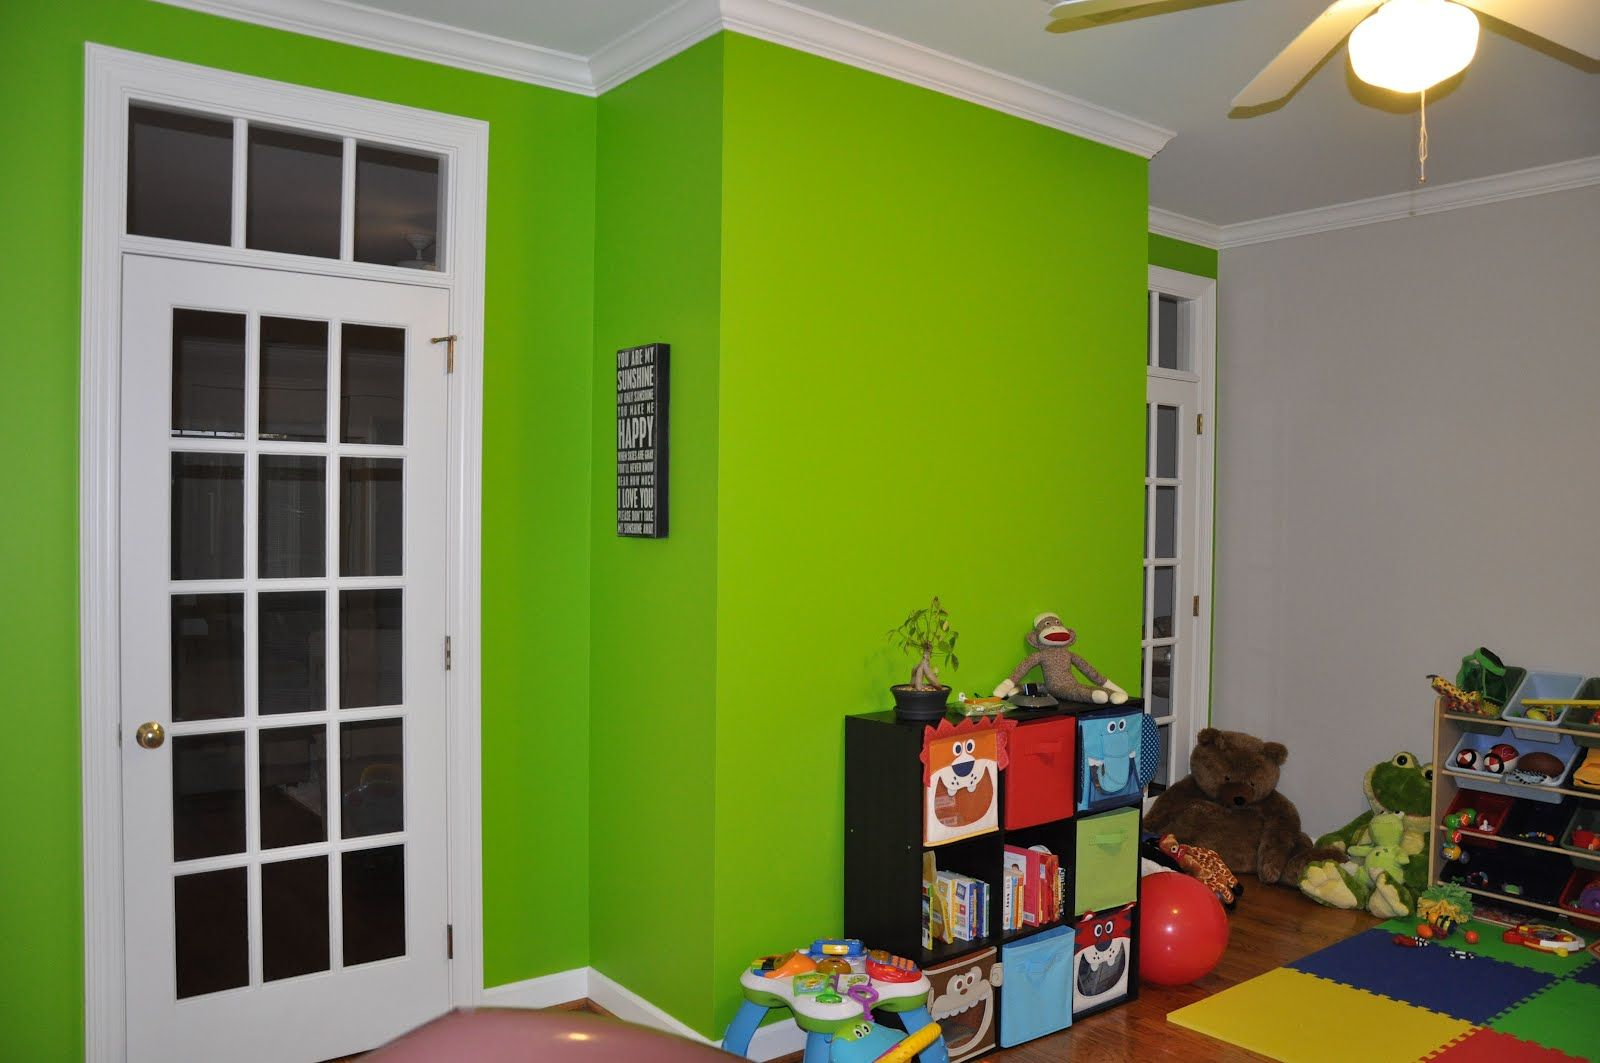 17 Best images about Isa  s bedroom on Pinterest   Green walls  Single bunk  bed and Lime green bedrooms. 17 Best images about Isa  s bedroom on Pinterest   Green walls